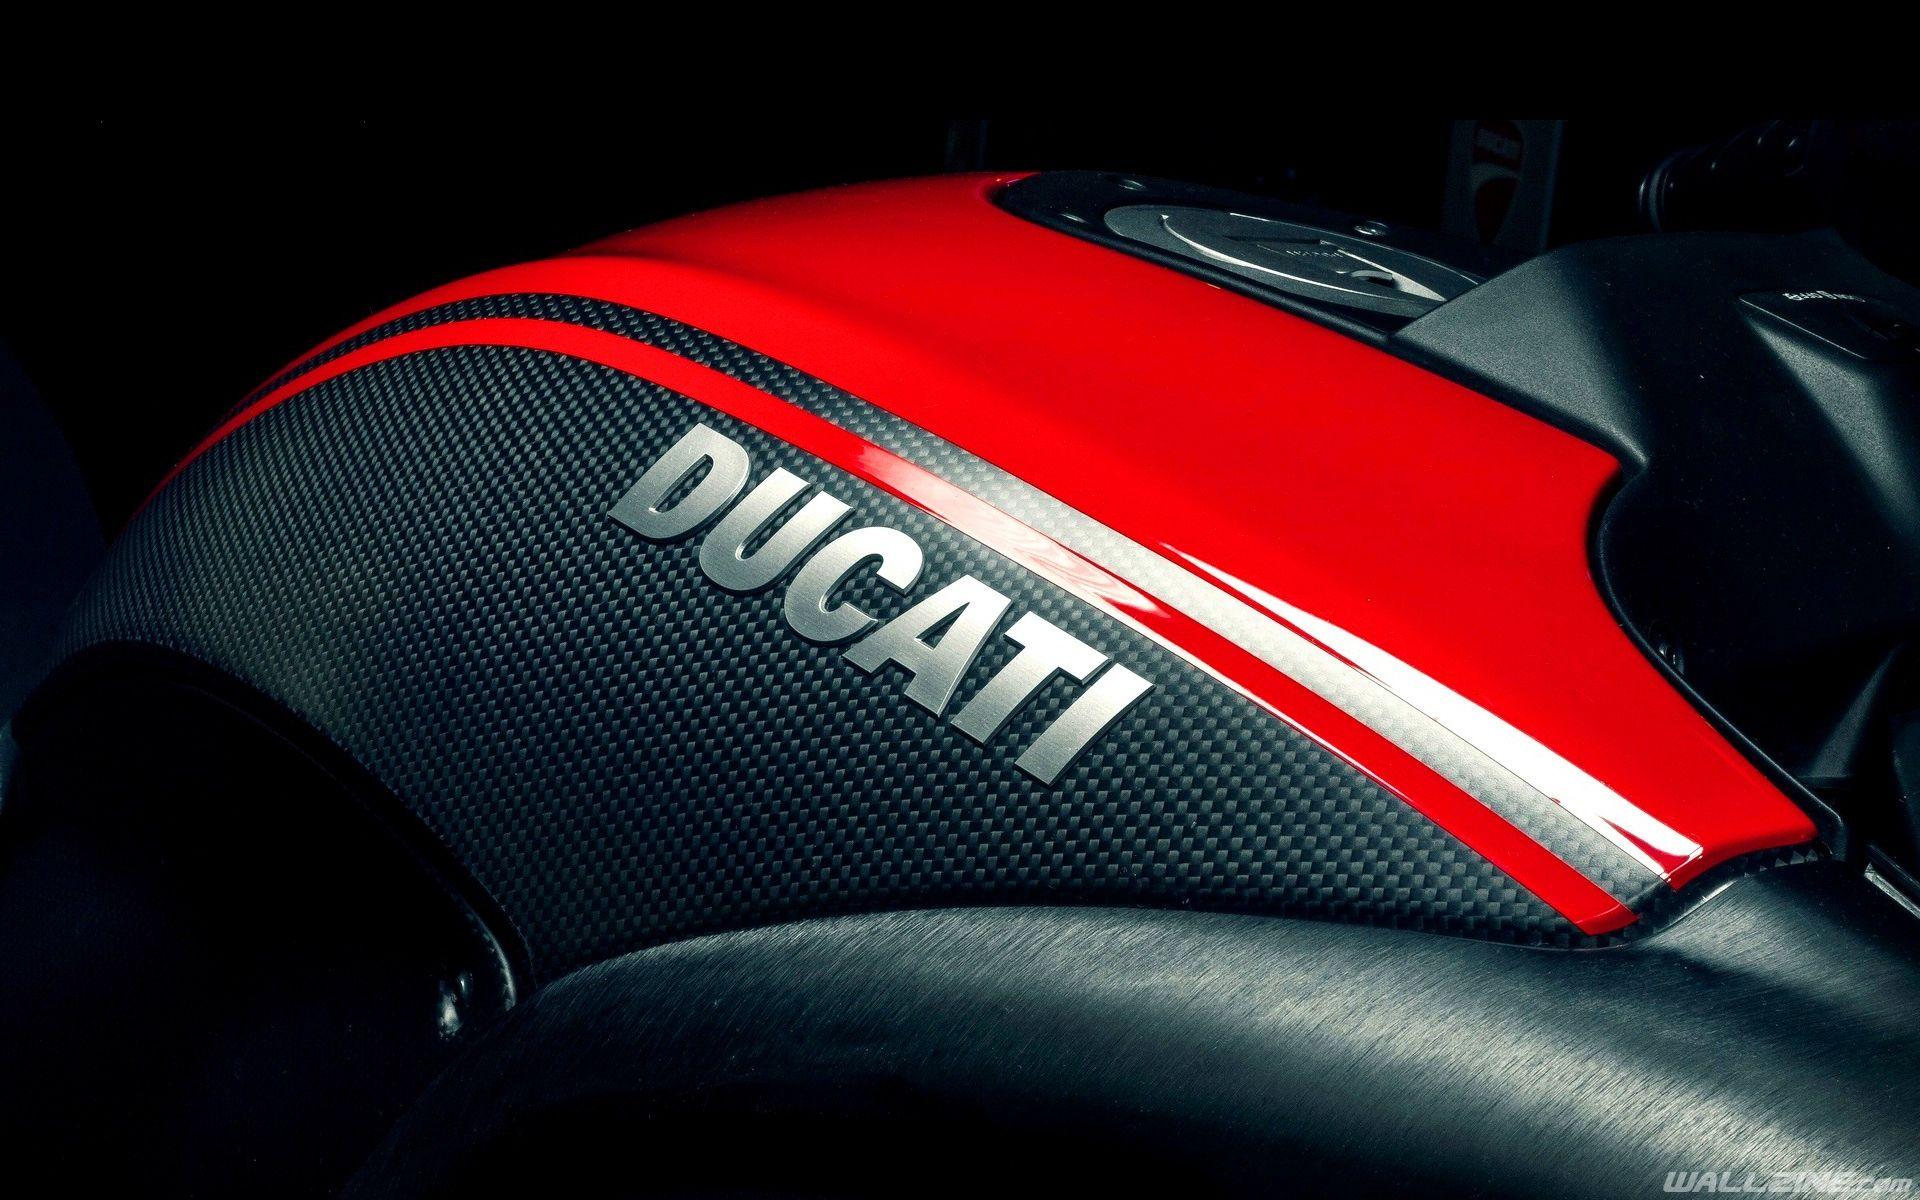 Ducati Bikes Wallpaper Ducati Ducati Diavel Motorcycles In India